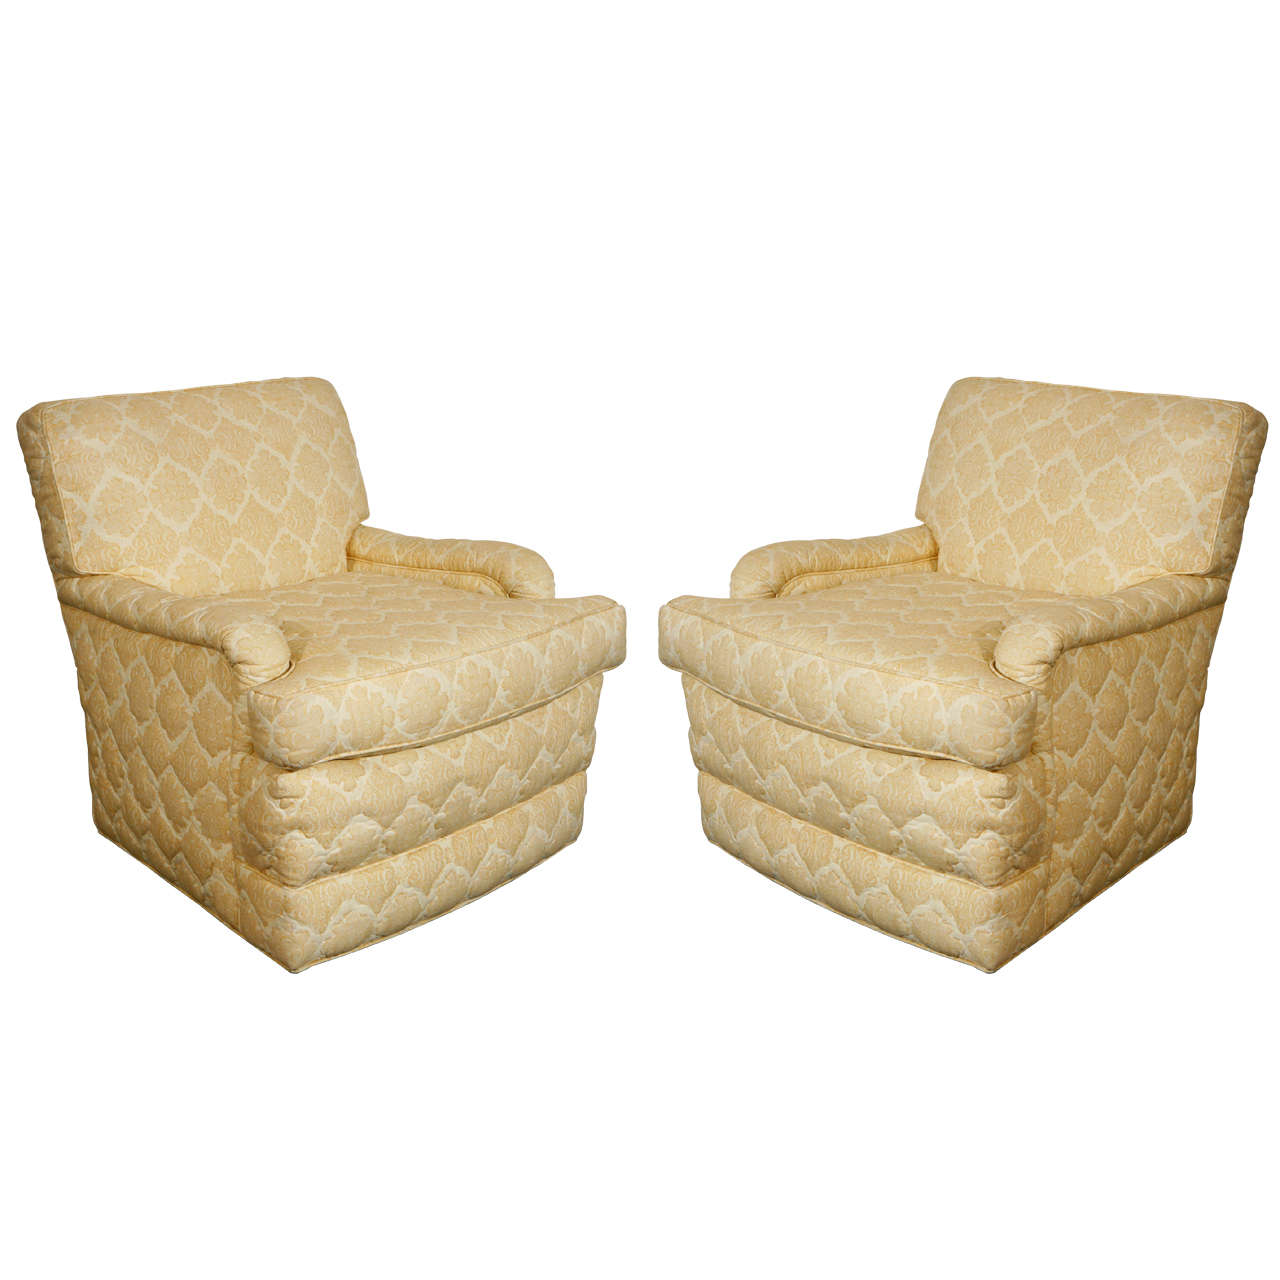 quilted swivel chair yellow desk pair of william haines quotseniah quot chairs in original